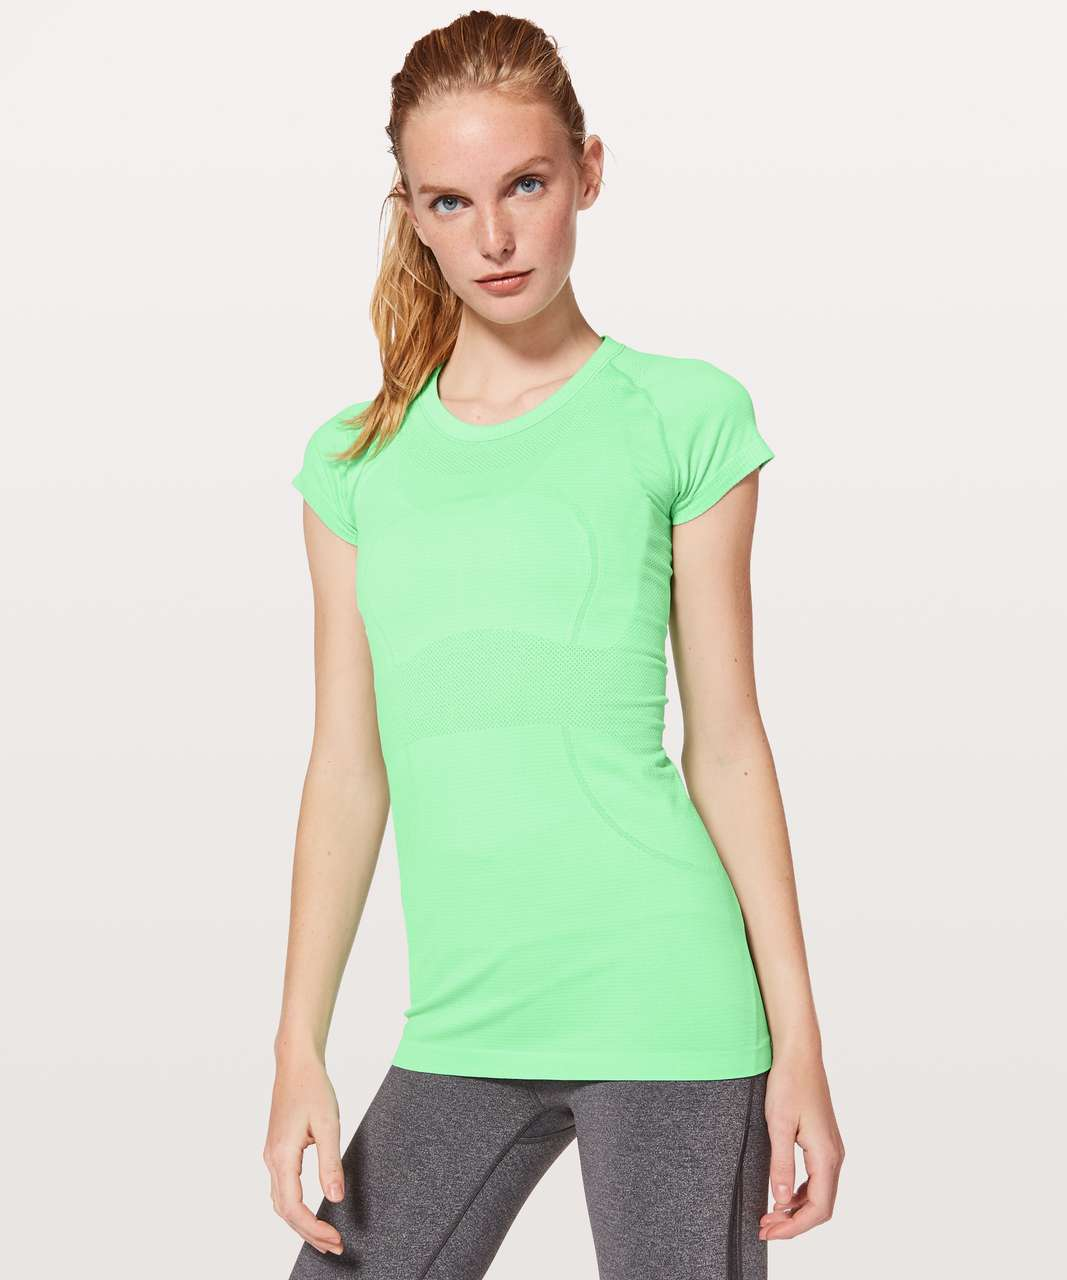 Lululemon Swiftly Tech Short Sleeve Crew - Dragonfly / White